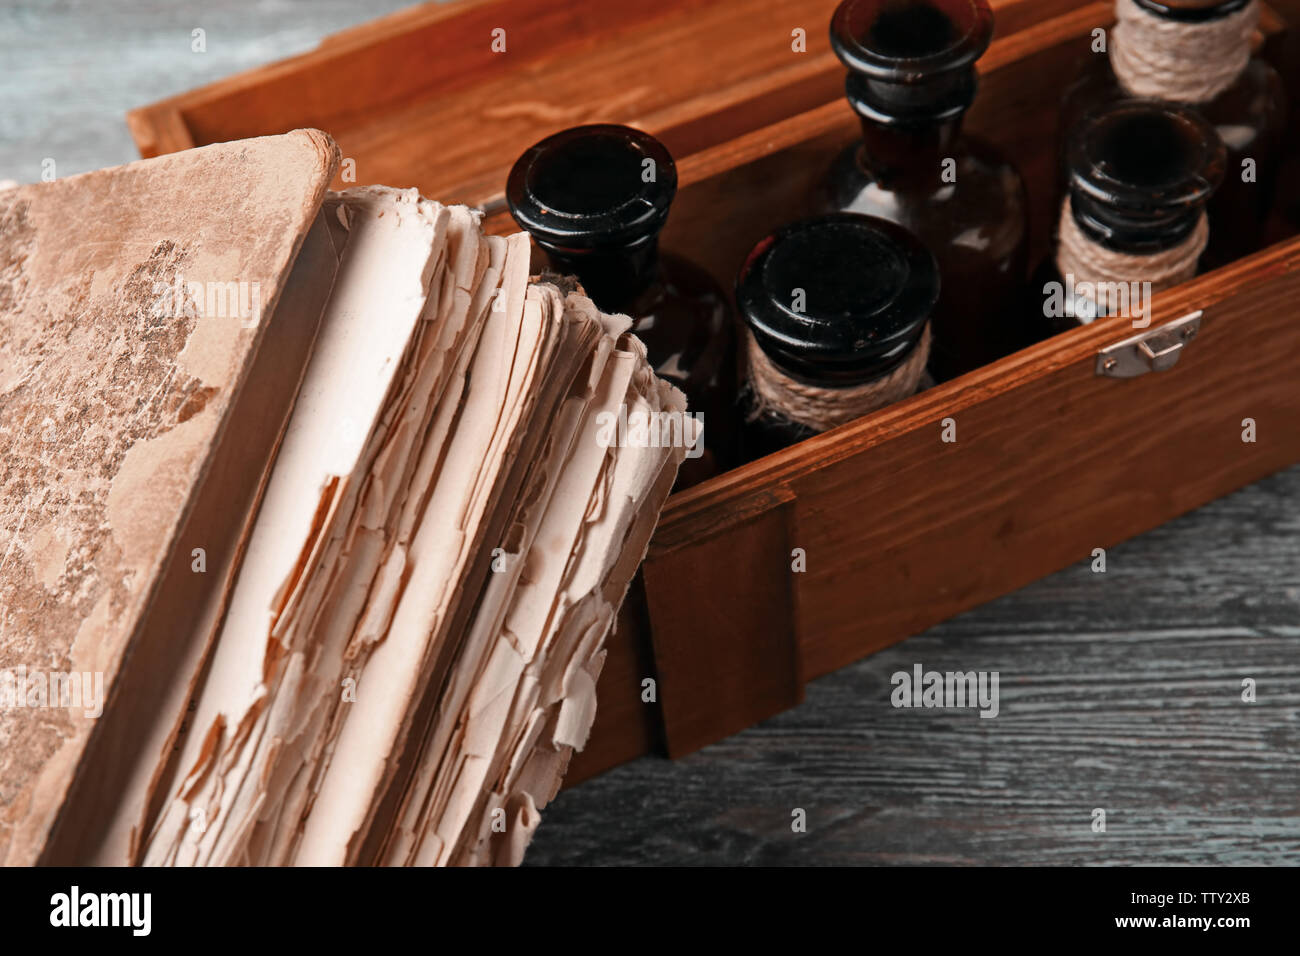 Vintage glass bottles in wooden box with old book, closeup - Stock Image